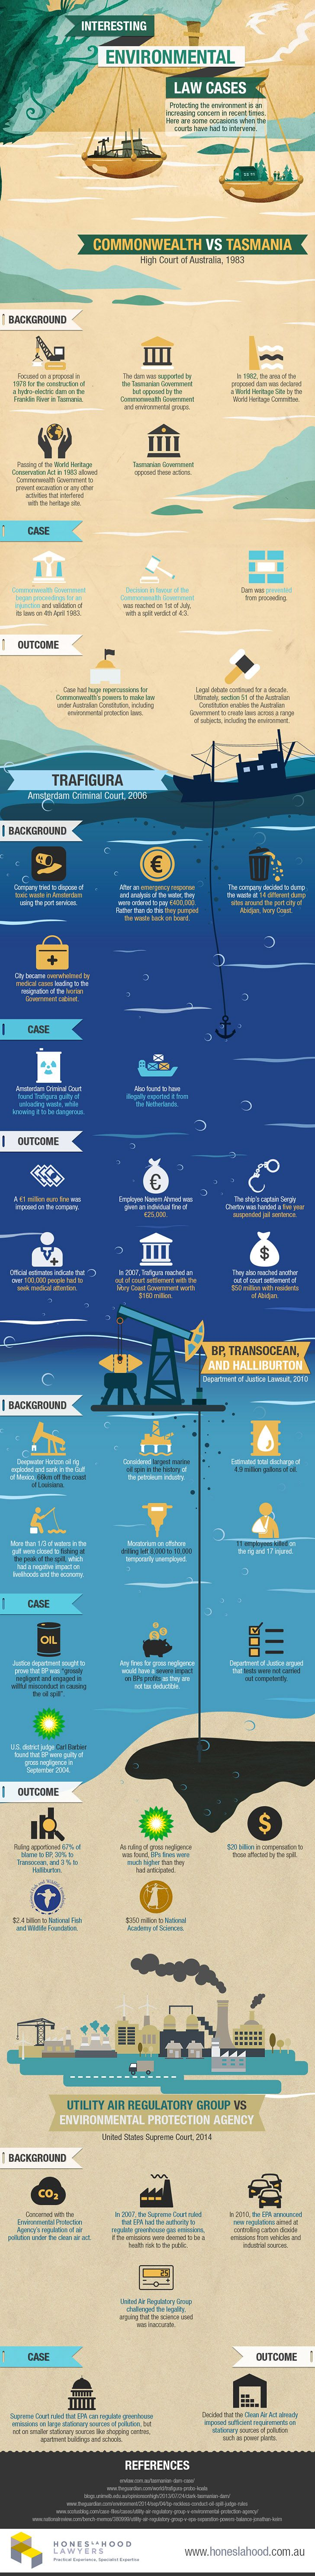 This infographic from Australia-based Hones La Hood Lawyers reveals some of the most interesting environmental law cases throughout history and the positive (and not so positive) changes that they brought about, including who benefited from the BP oil spill fines and how current EPA air quality regulations came about.